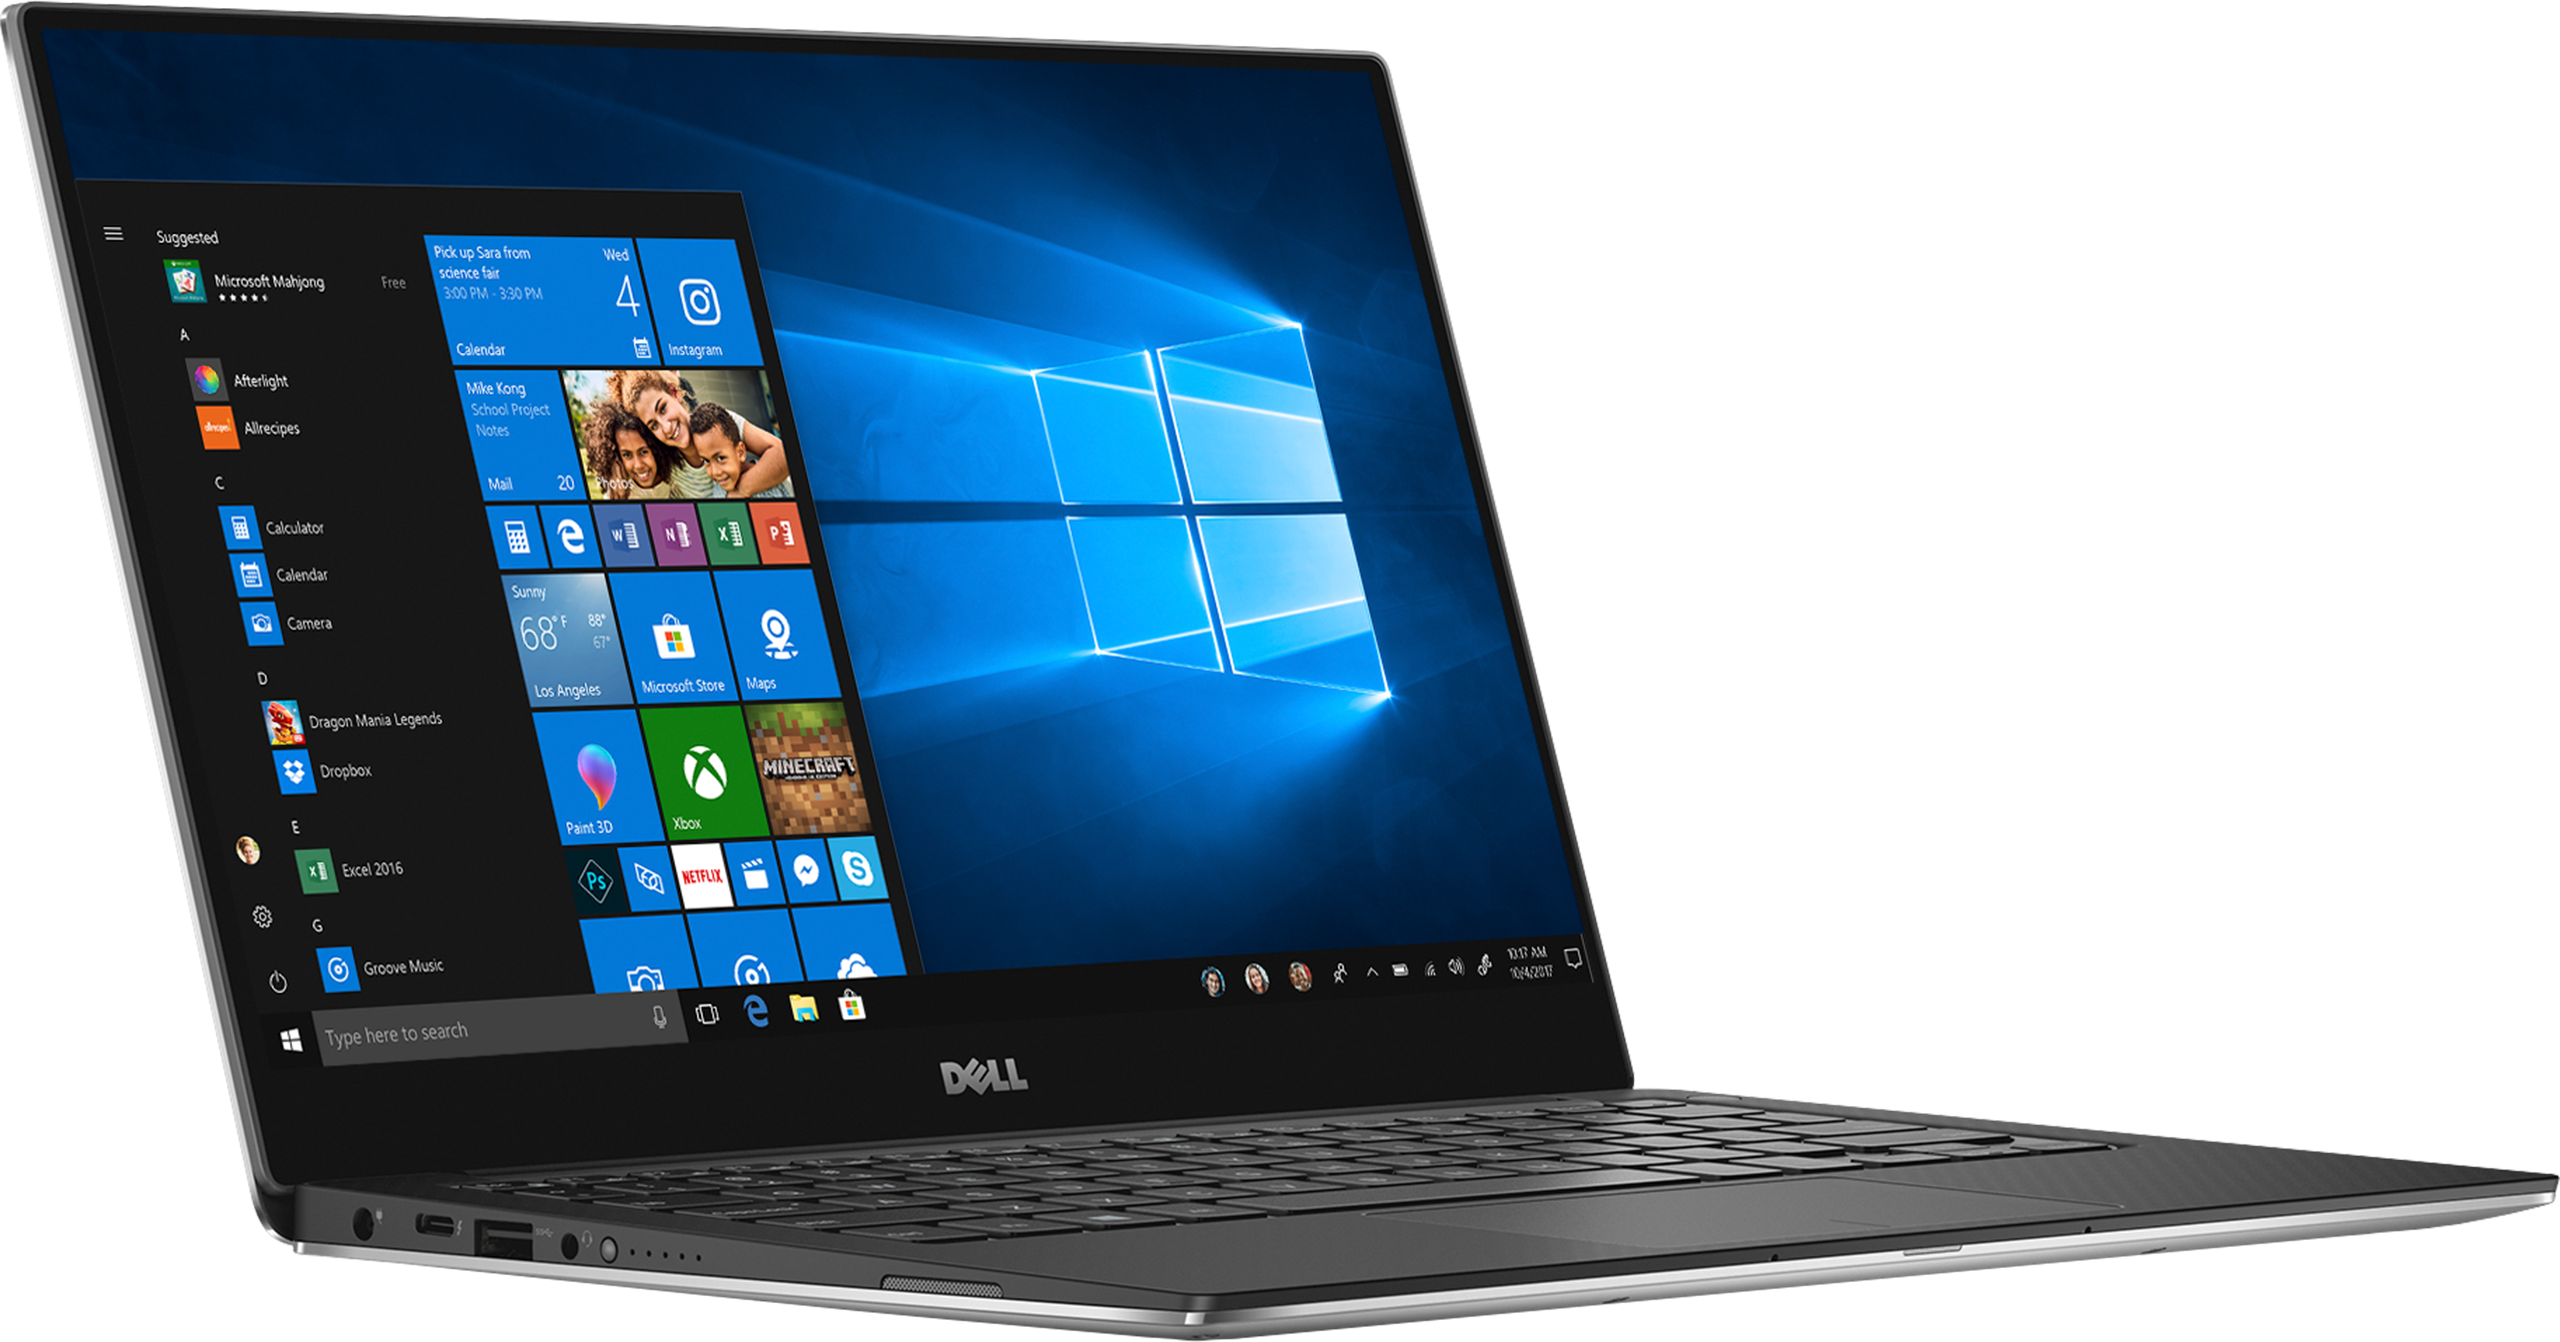 Dell XPS 13 9350 Signature Edition Laptop